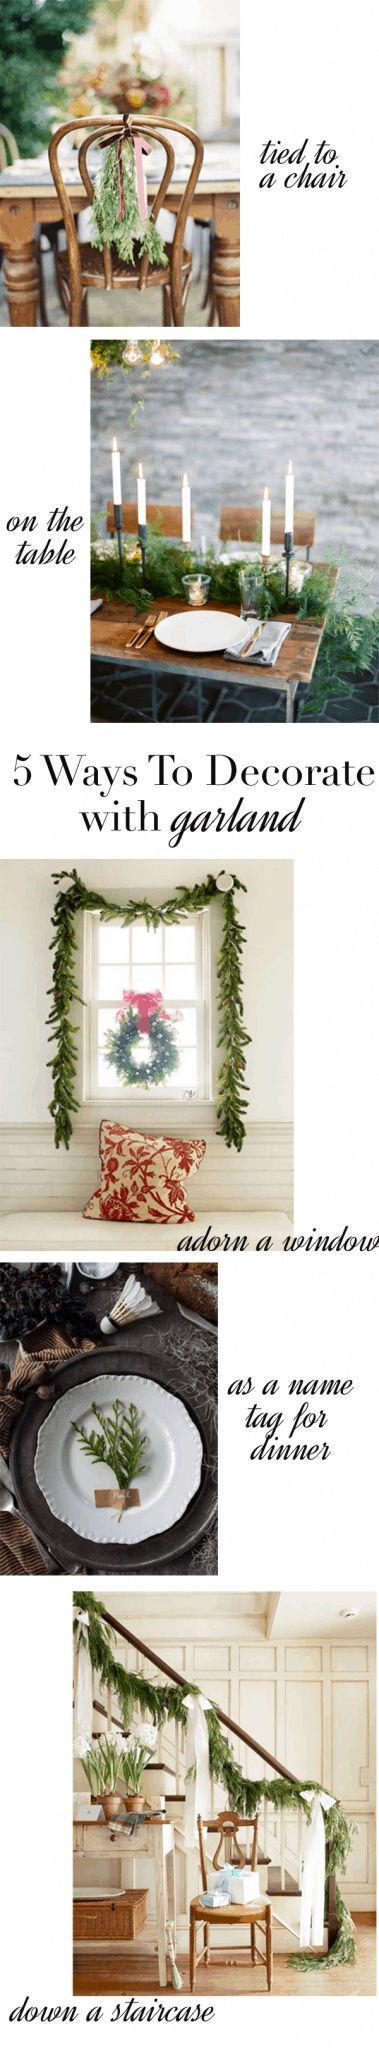 5 Ways To Decorate With Garland